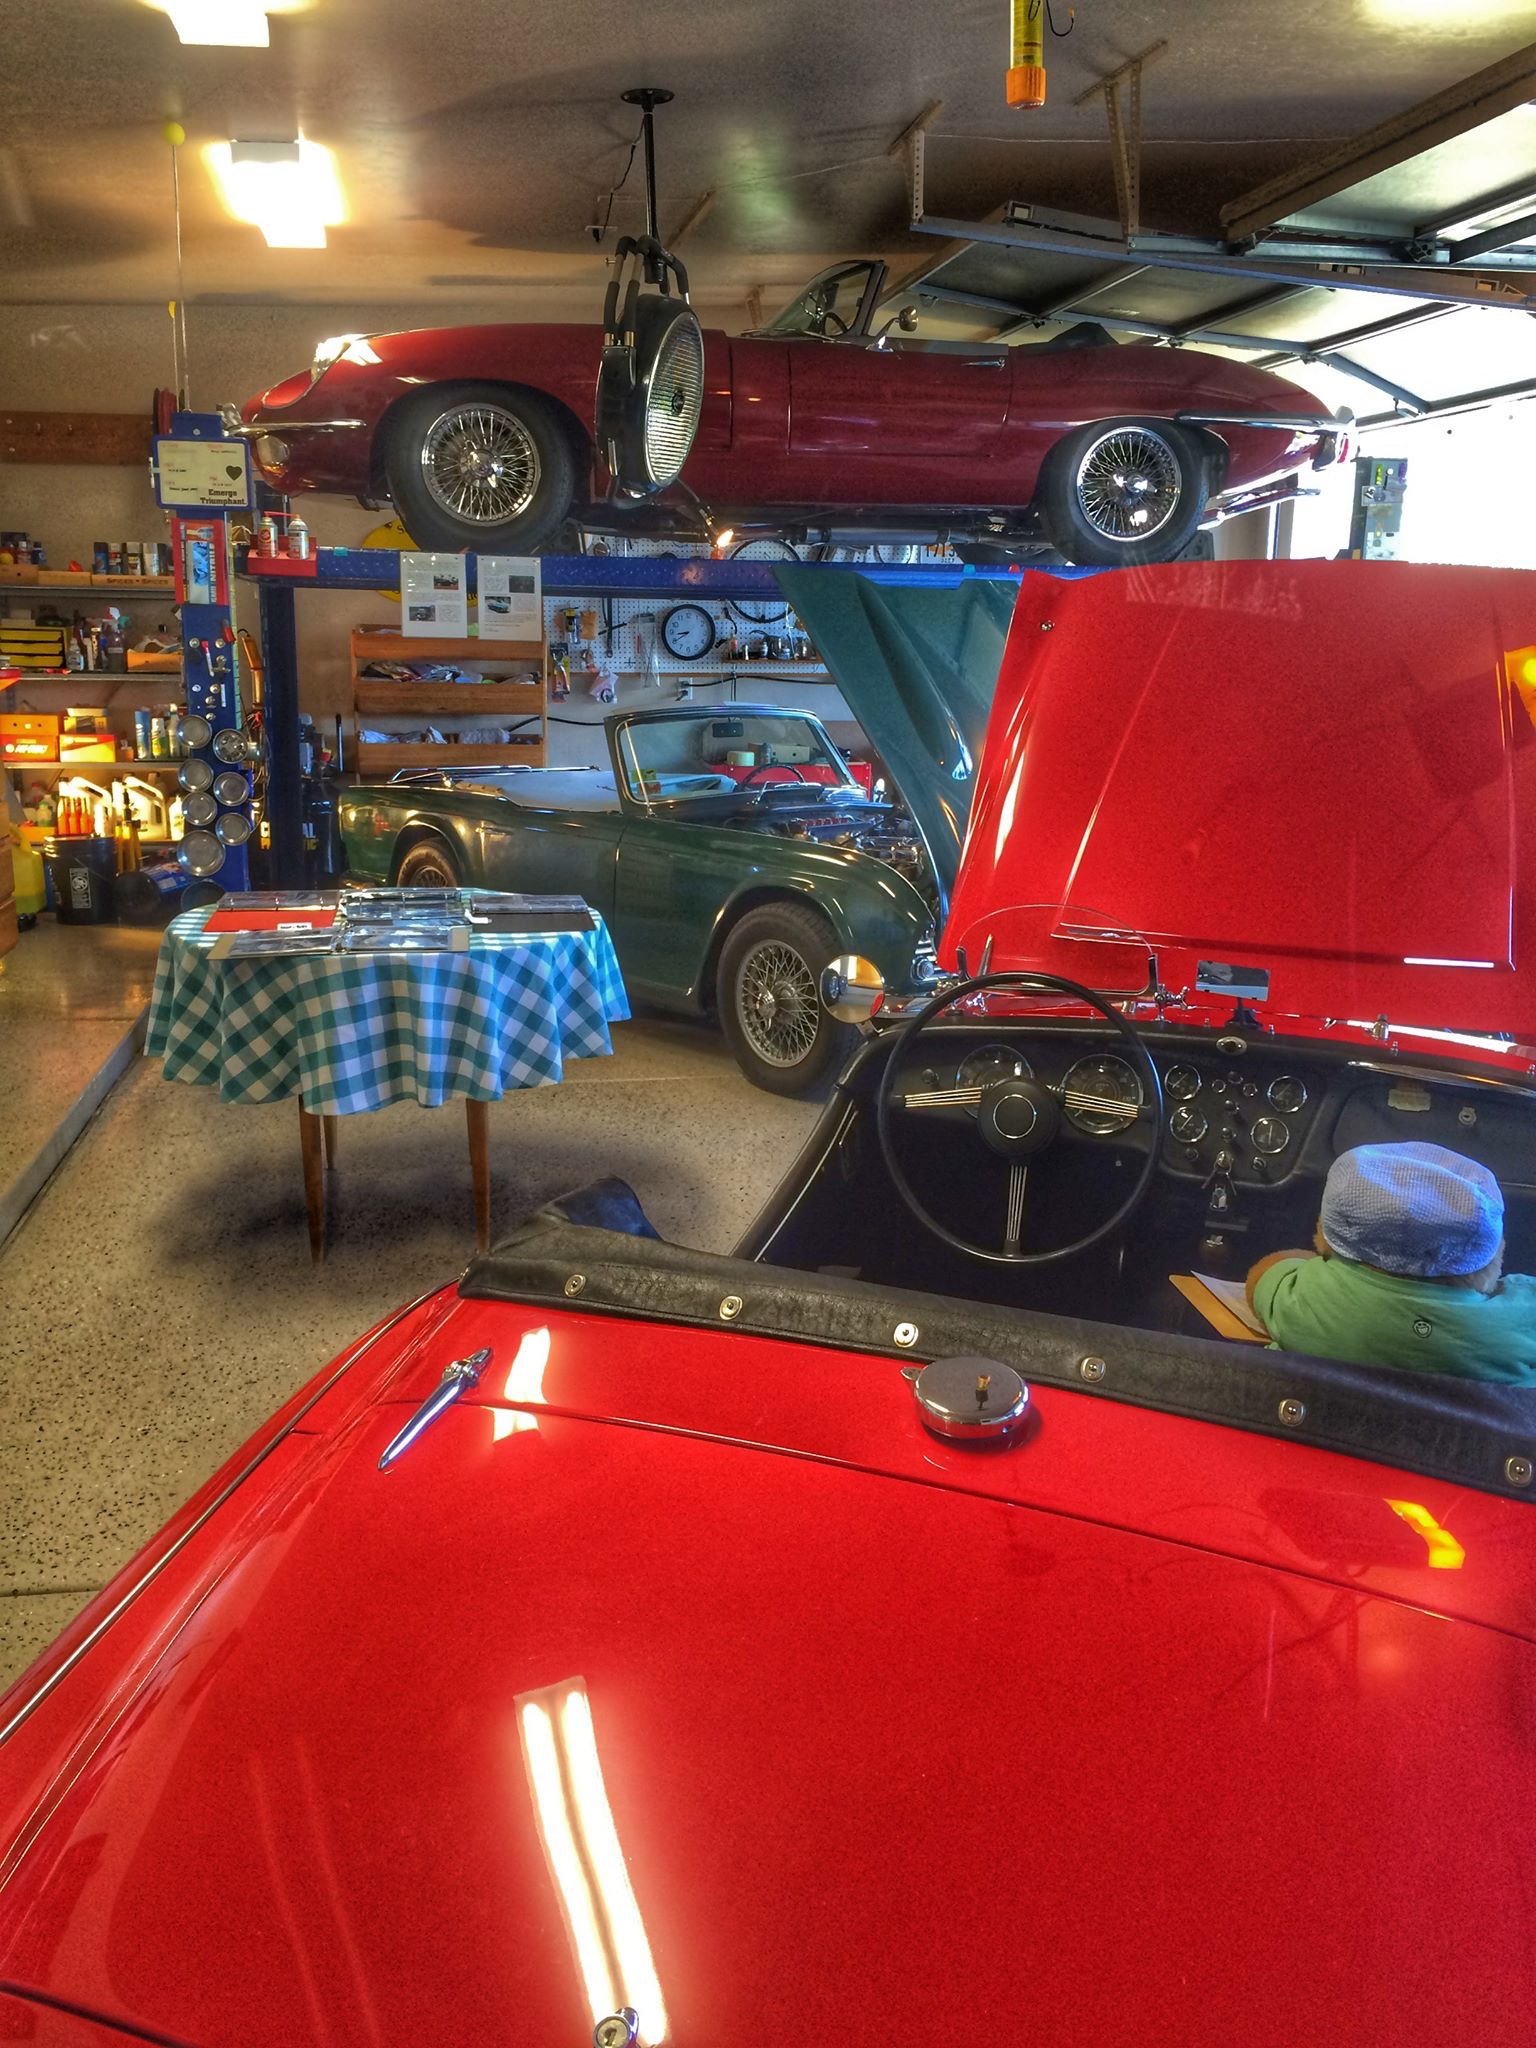 Garage Automobile Tours Le Tour Des Garage 2016 Tucson British Car Register